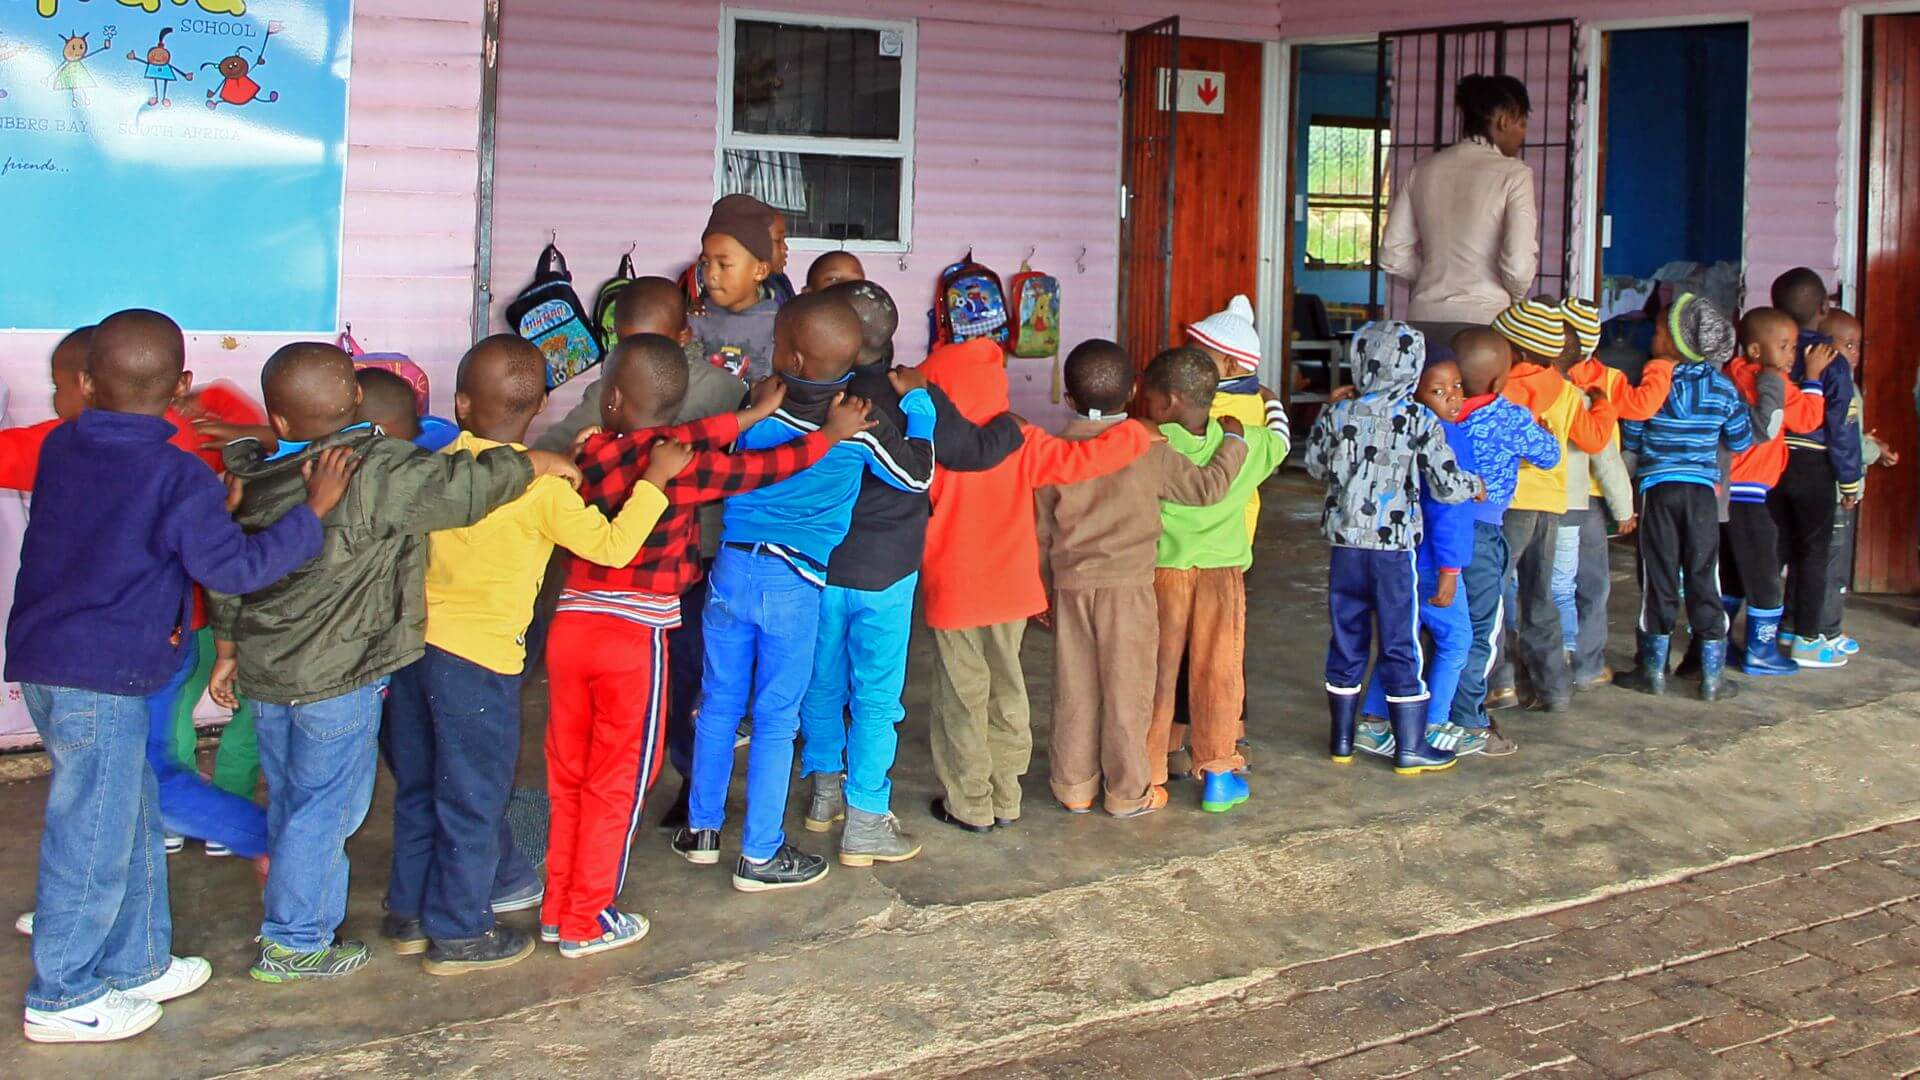 Primary school children, Plettenberg Bay, South Africa